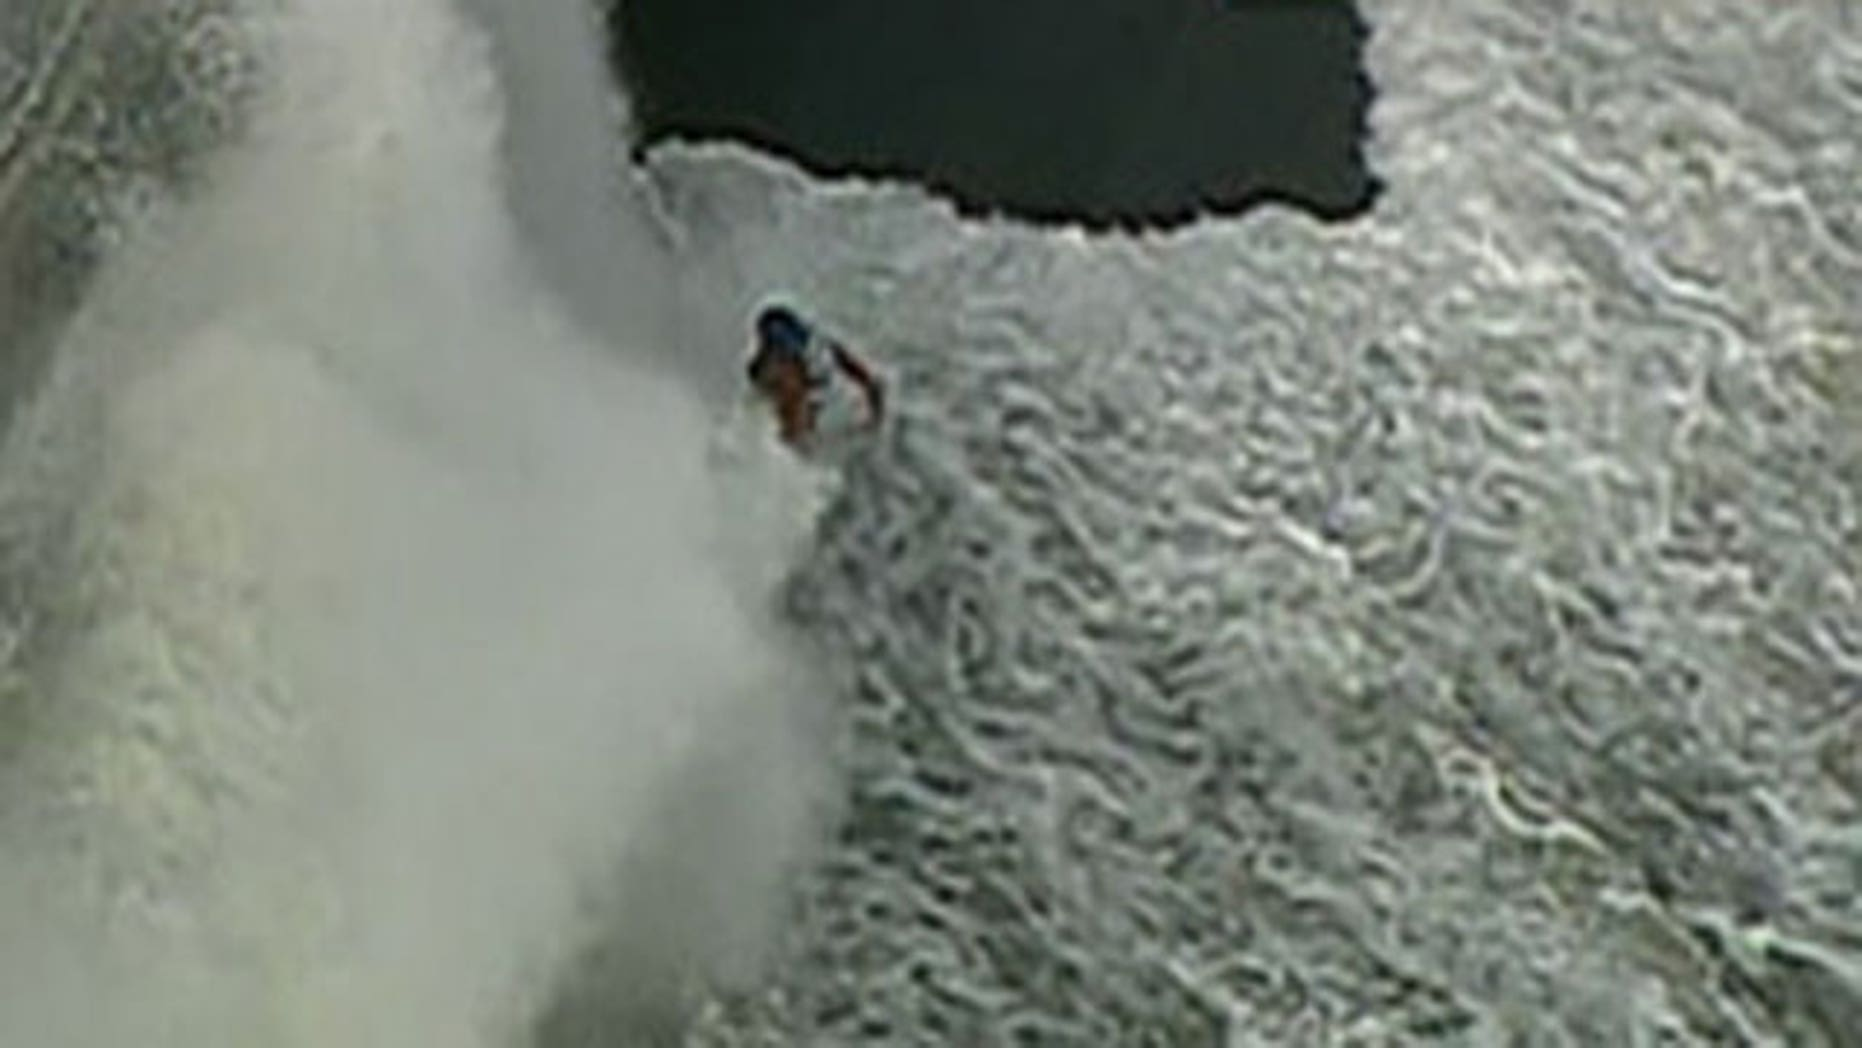 Sept. 30, 2011: A cyclist is hit by a wave while traveling along the Lake Michigan jogging path.